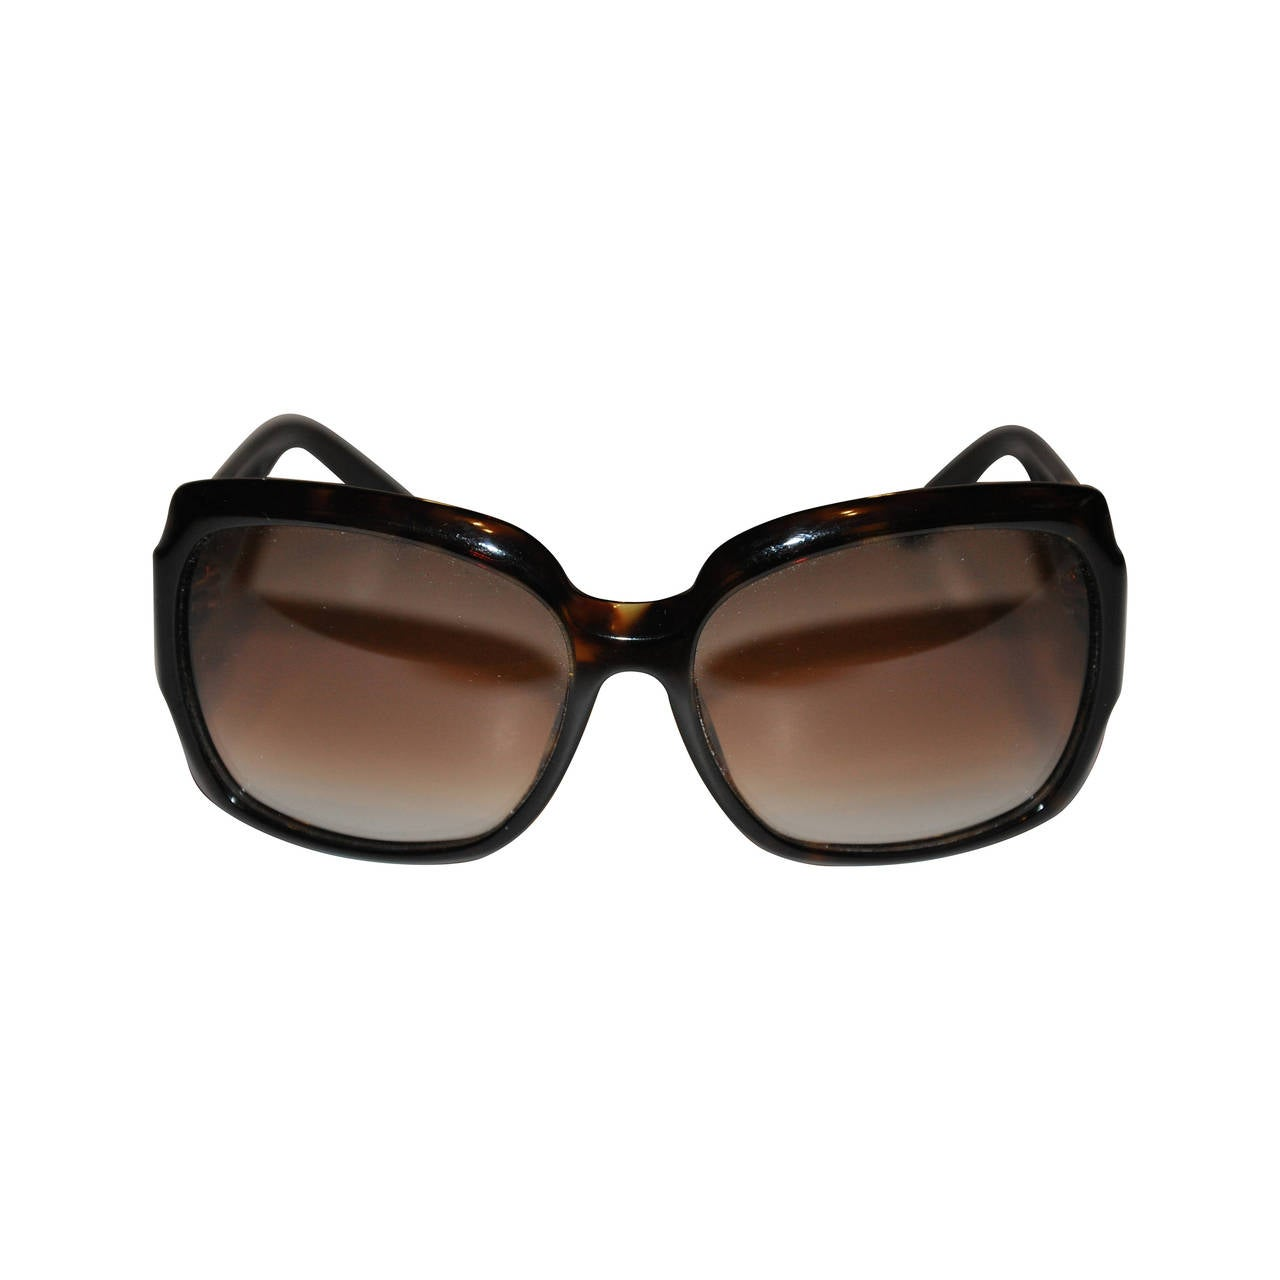 Yves Saint Laurent Black Lucite with Signature Name Sunglasses